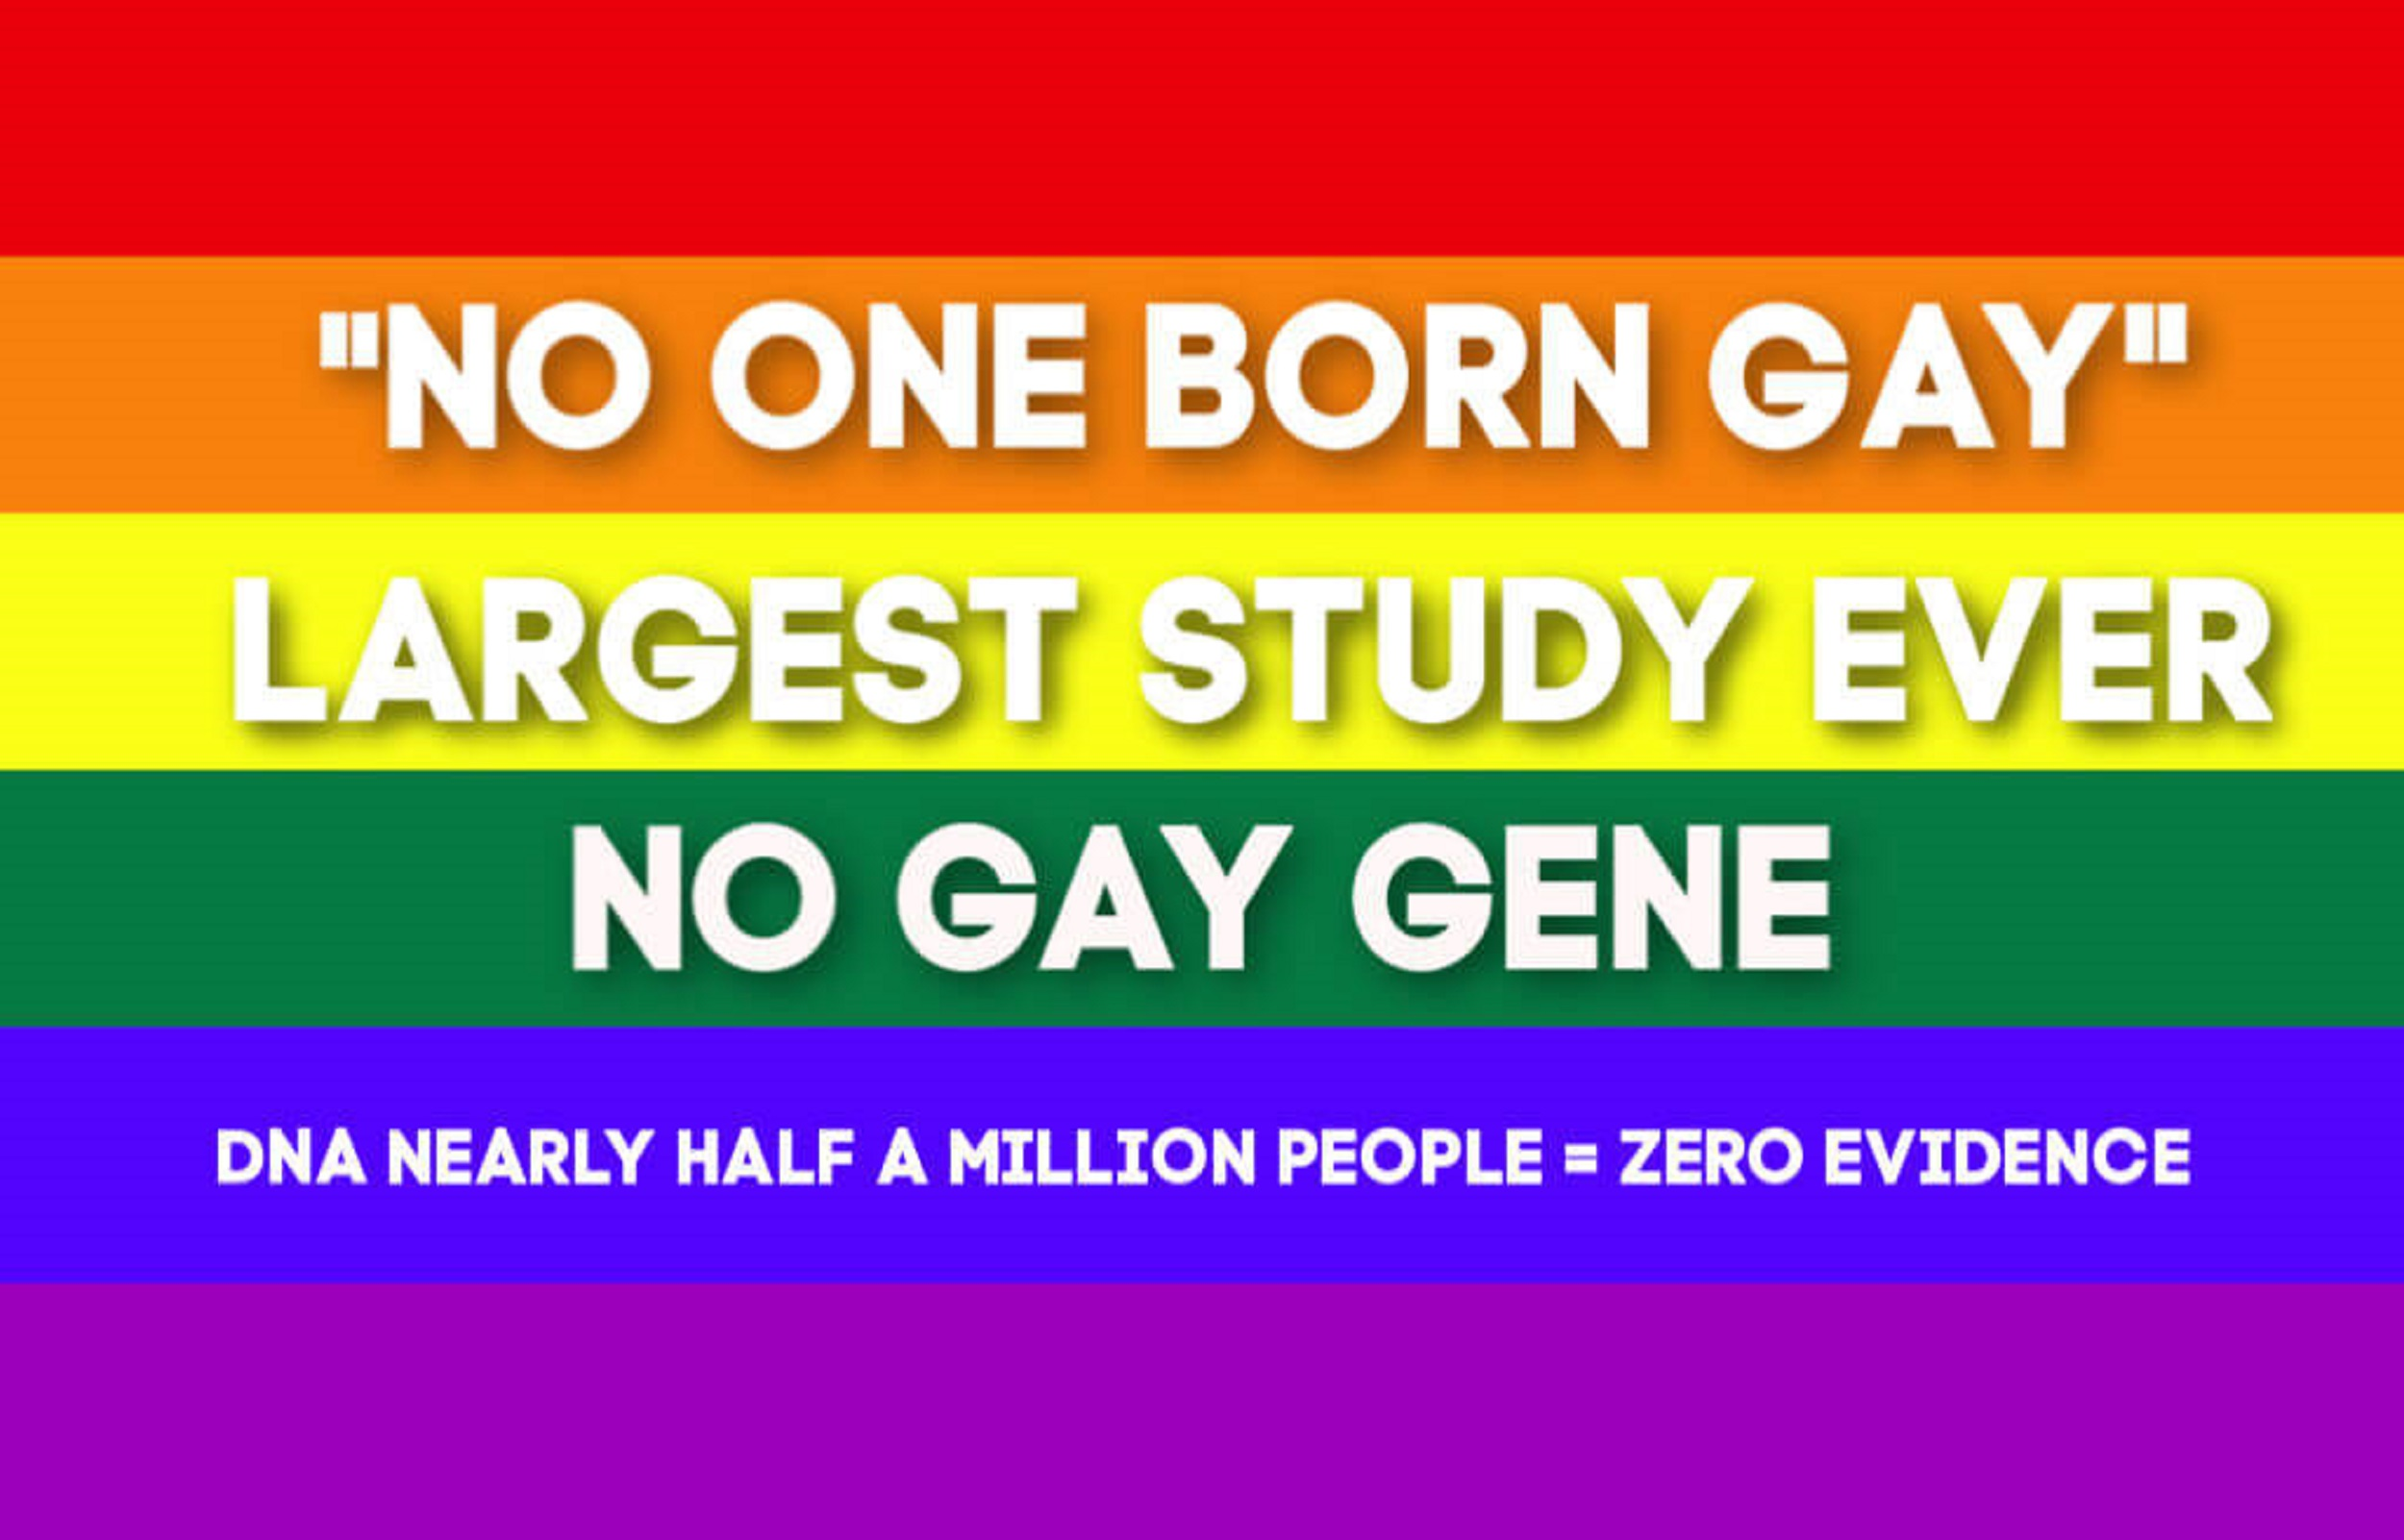 No-Gay-Gene-9-2019 - Rotator